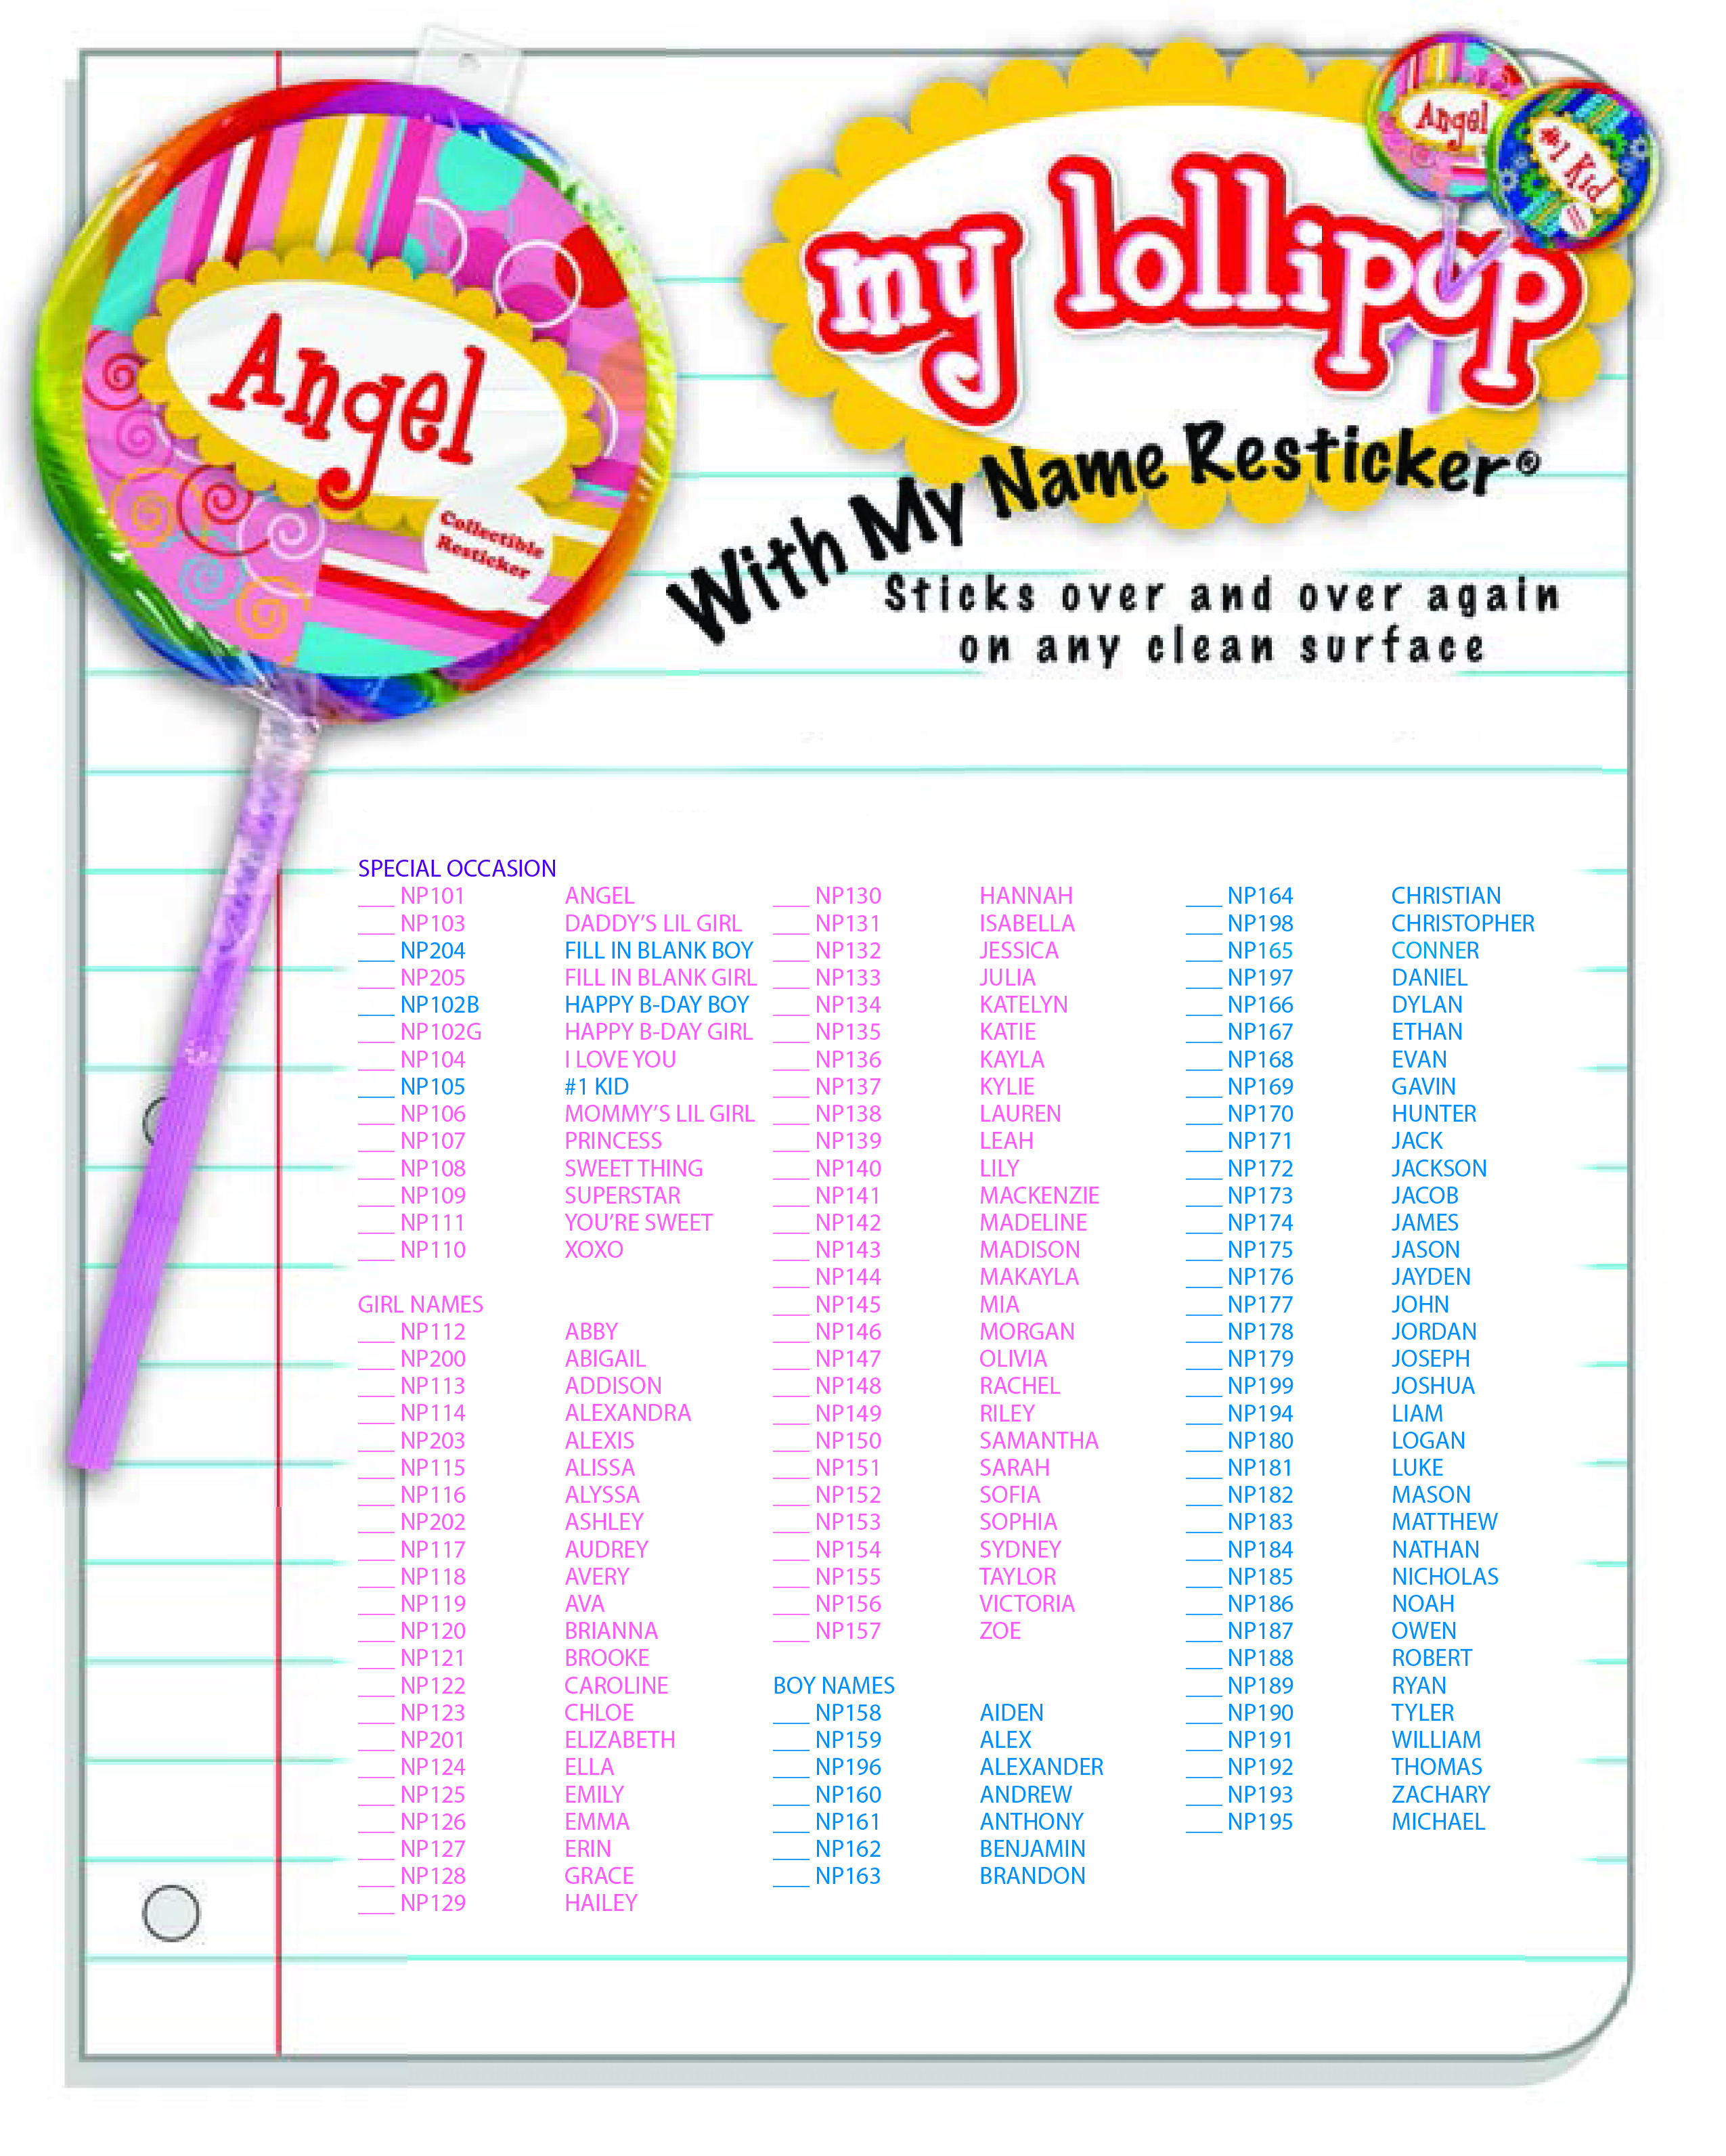 Emoji Restickers Lollipops Ad